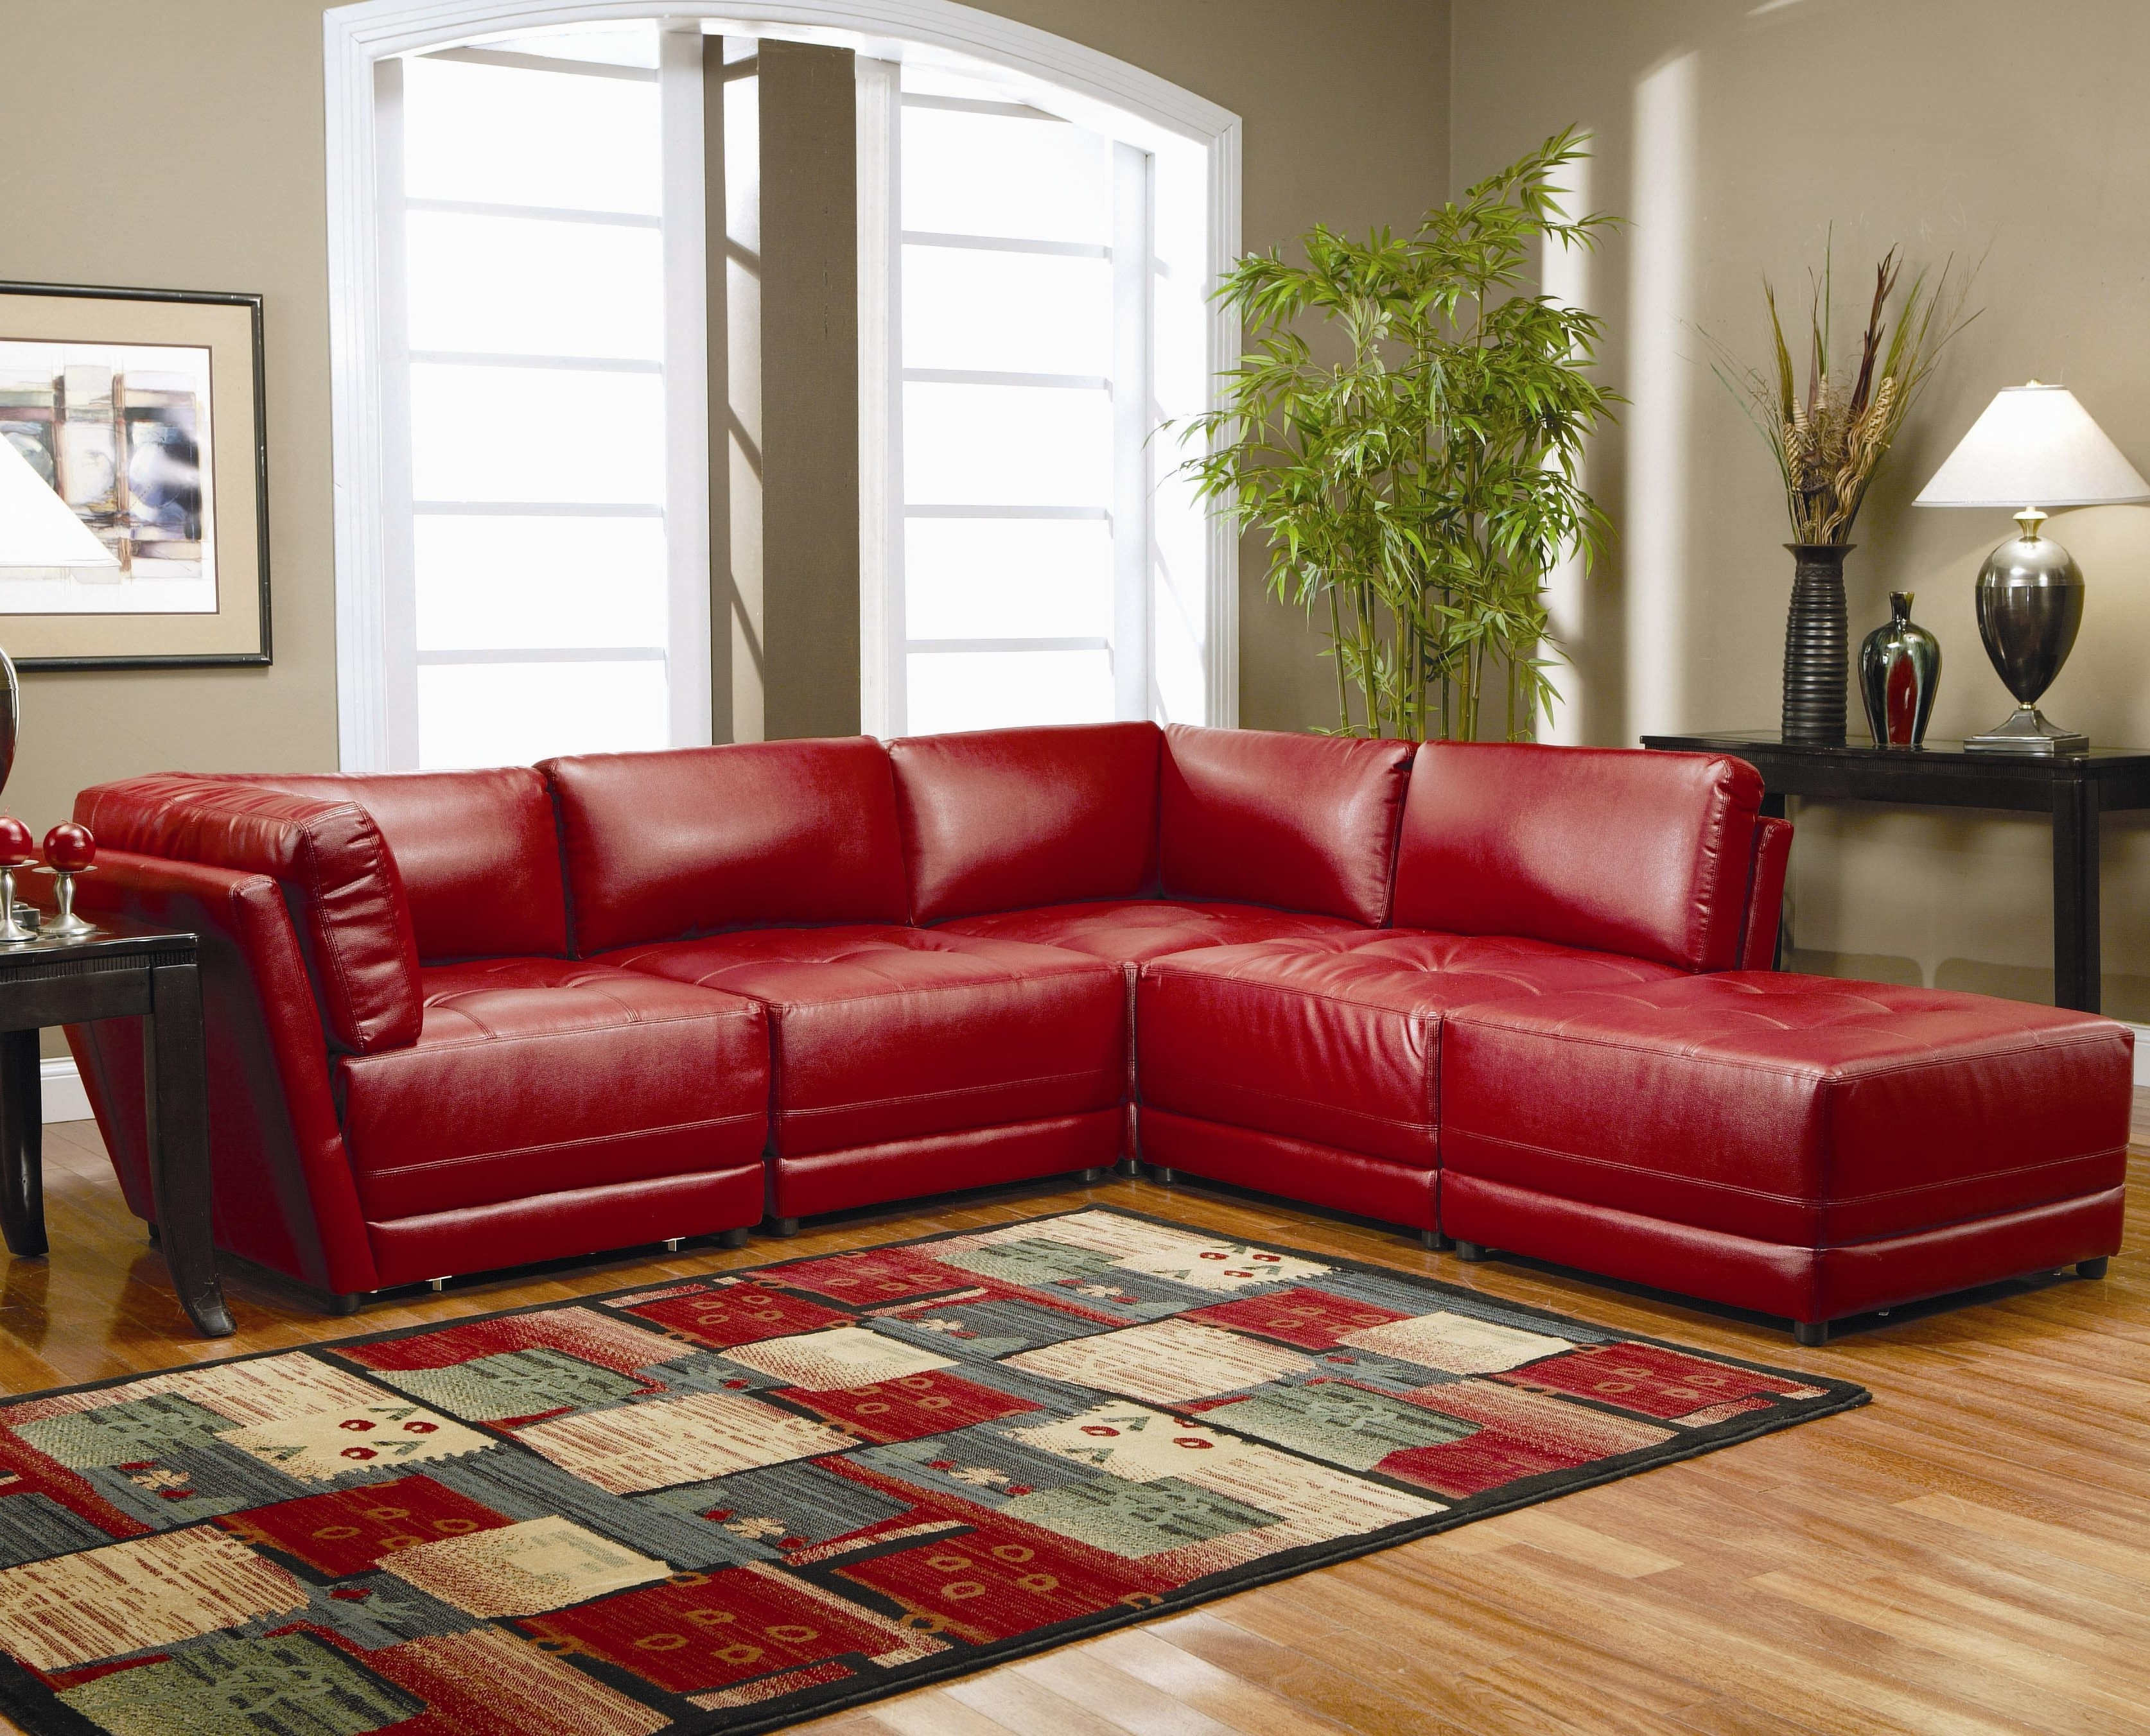 Red Faux Leather Sectionals Inside Most Up To Date Warm Red Leather Sectional L Shaped Sofa Design Ideas For Living (View 6 of 20)